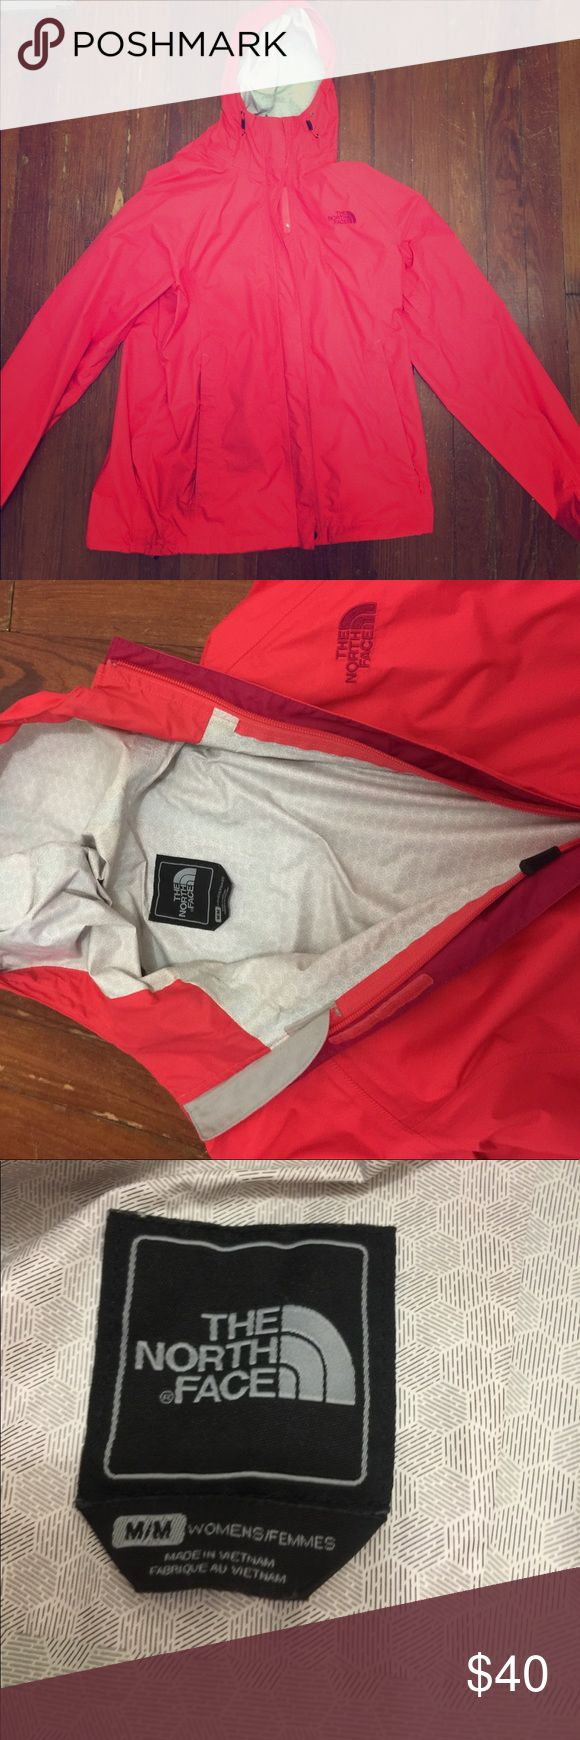 The North Face rain jacket A hot pink/bright melon color. Women's size medium. Hardly used lightweight rain jacket. I am a small but a medium allows for layering and still looks great. The North Face Jackets & Coats